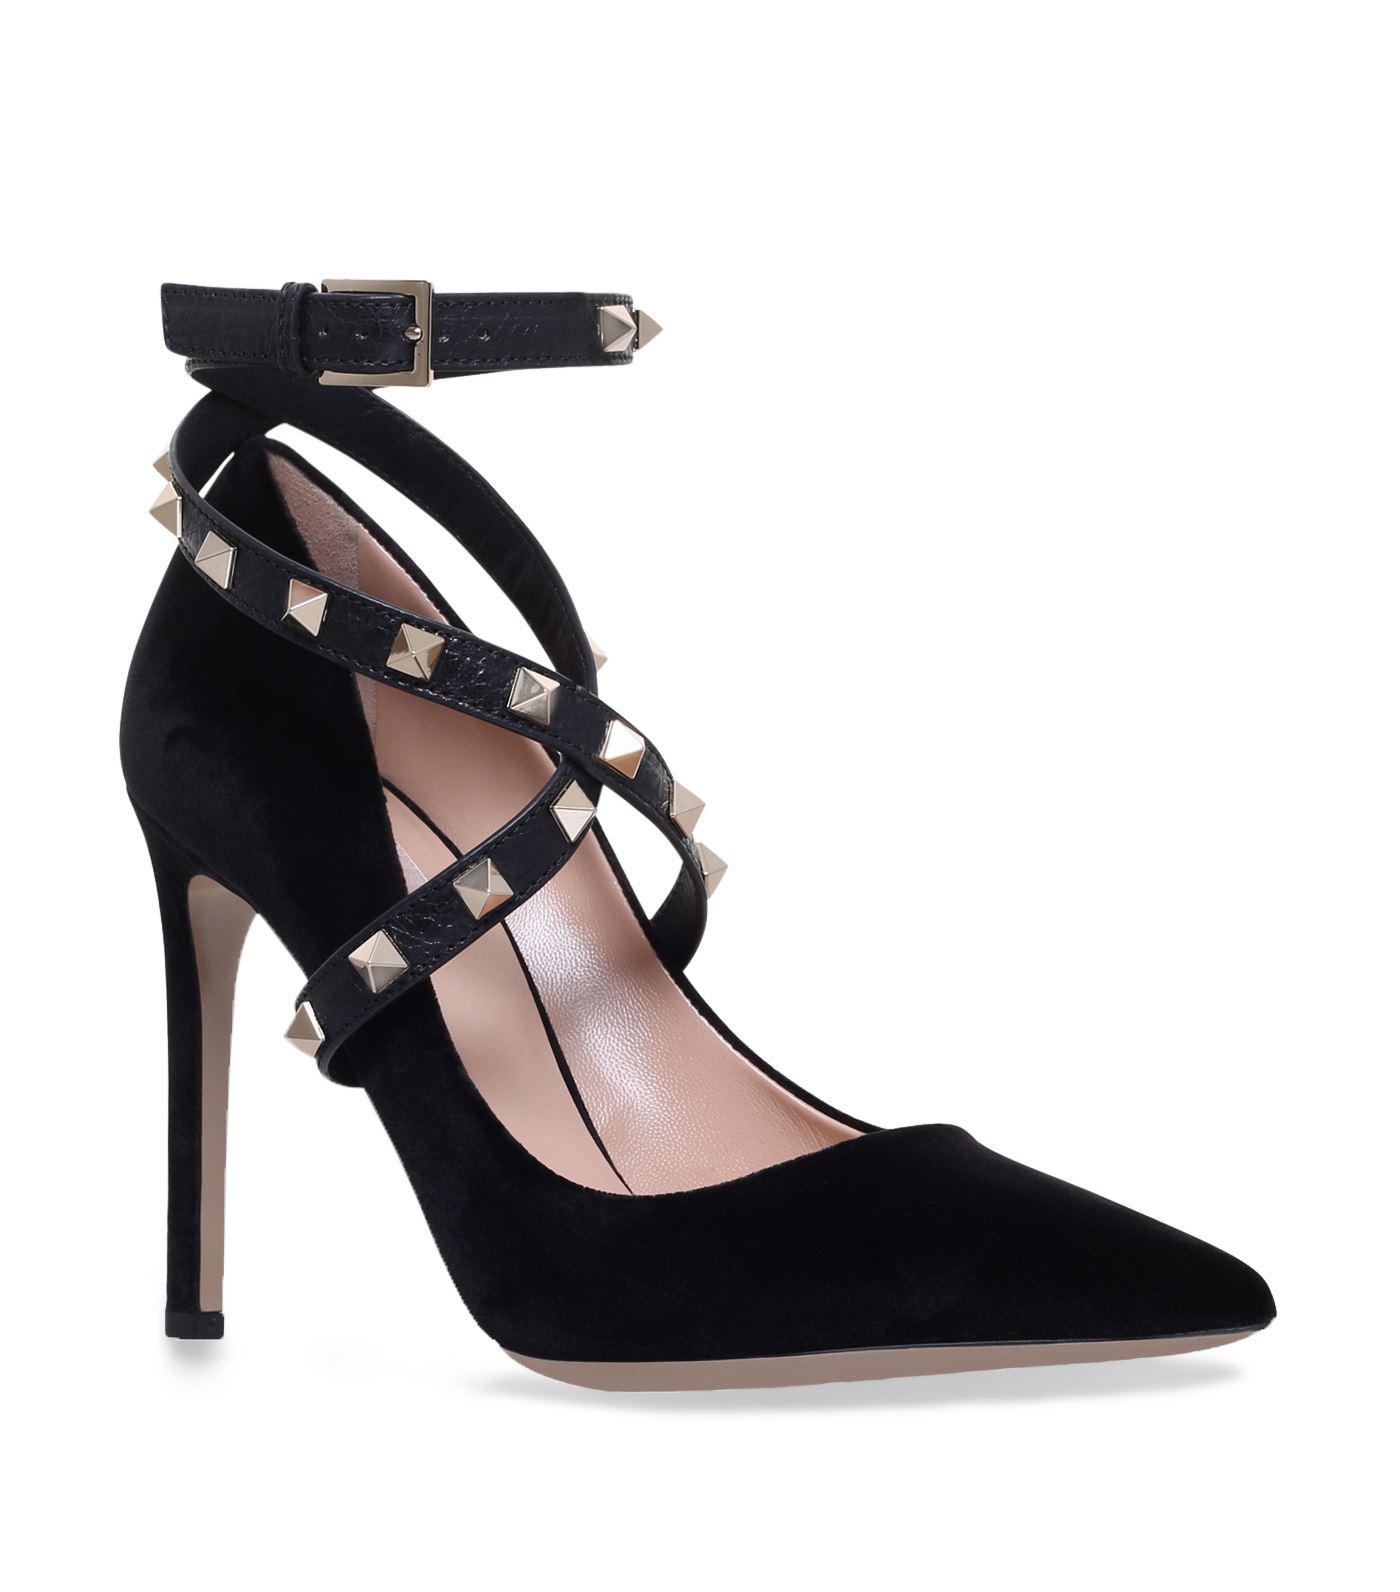 Valentino Suede Jewel-Embellished Pumps outlet sast buy cheap 100% guaranteed rknXbWZ5om